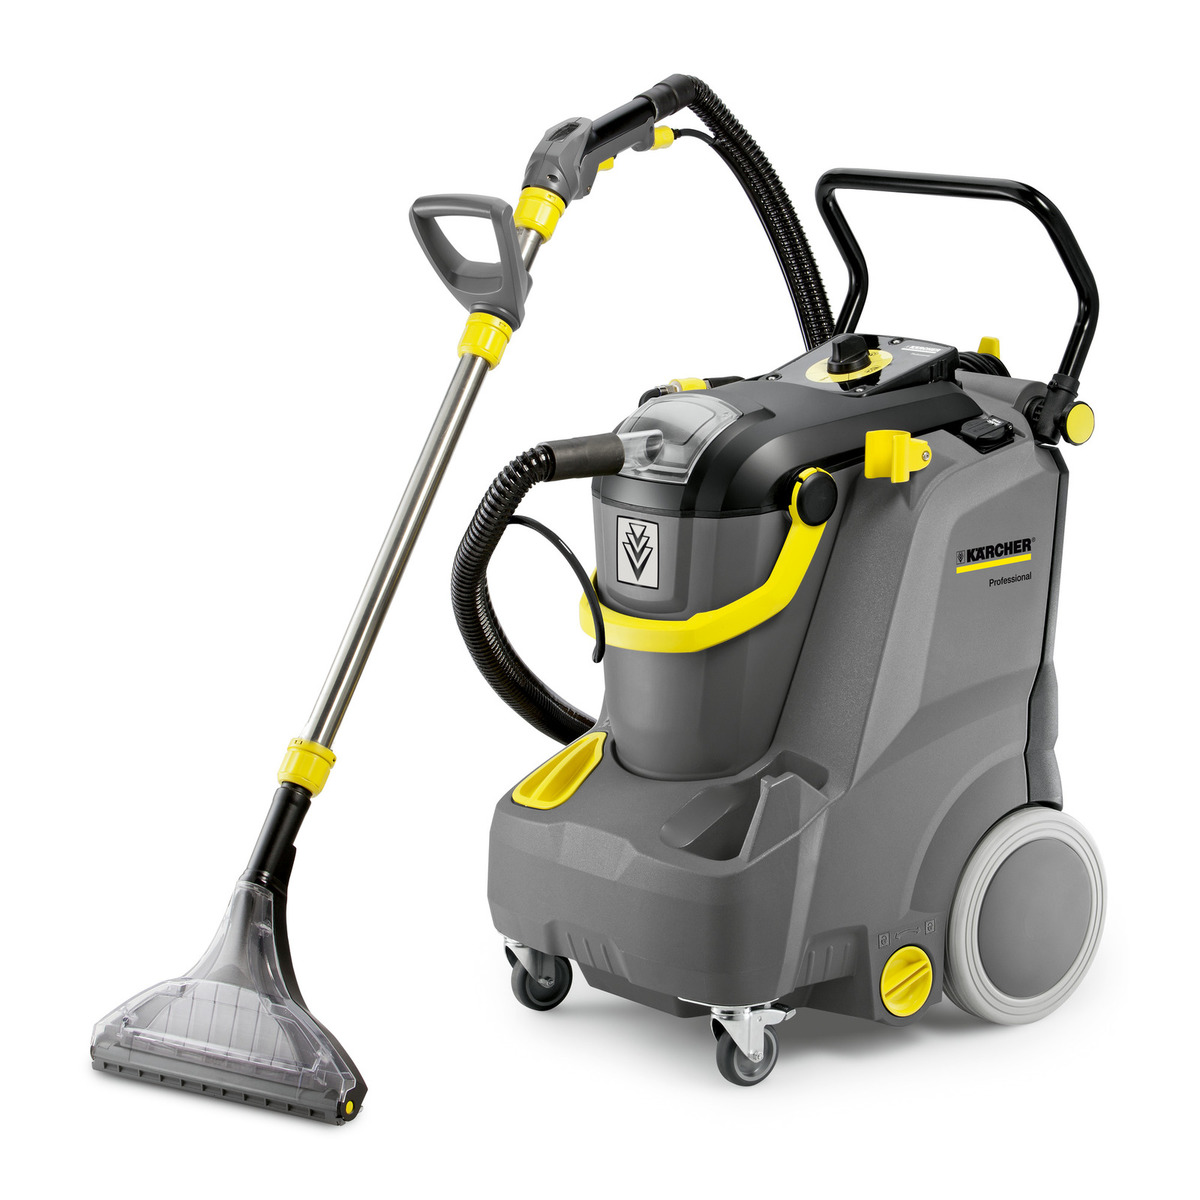 Karcher Carpet & Upholstery Spray Extraction Cleaner PUZZI 30/4